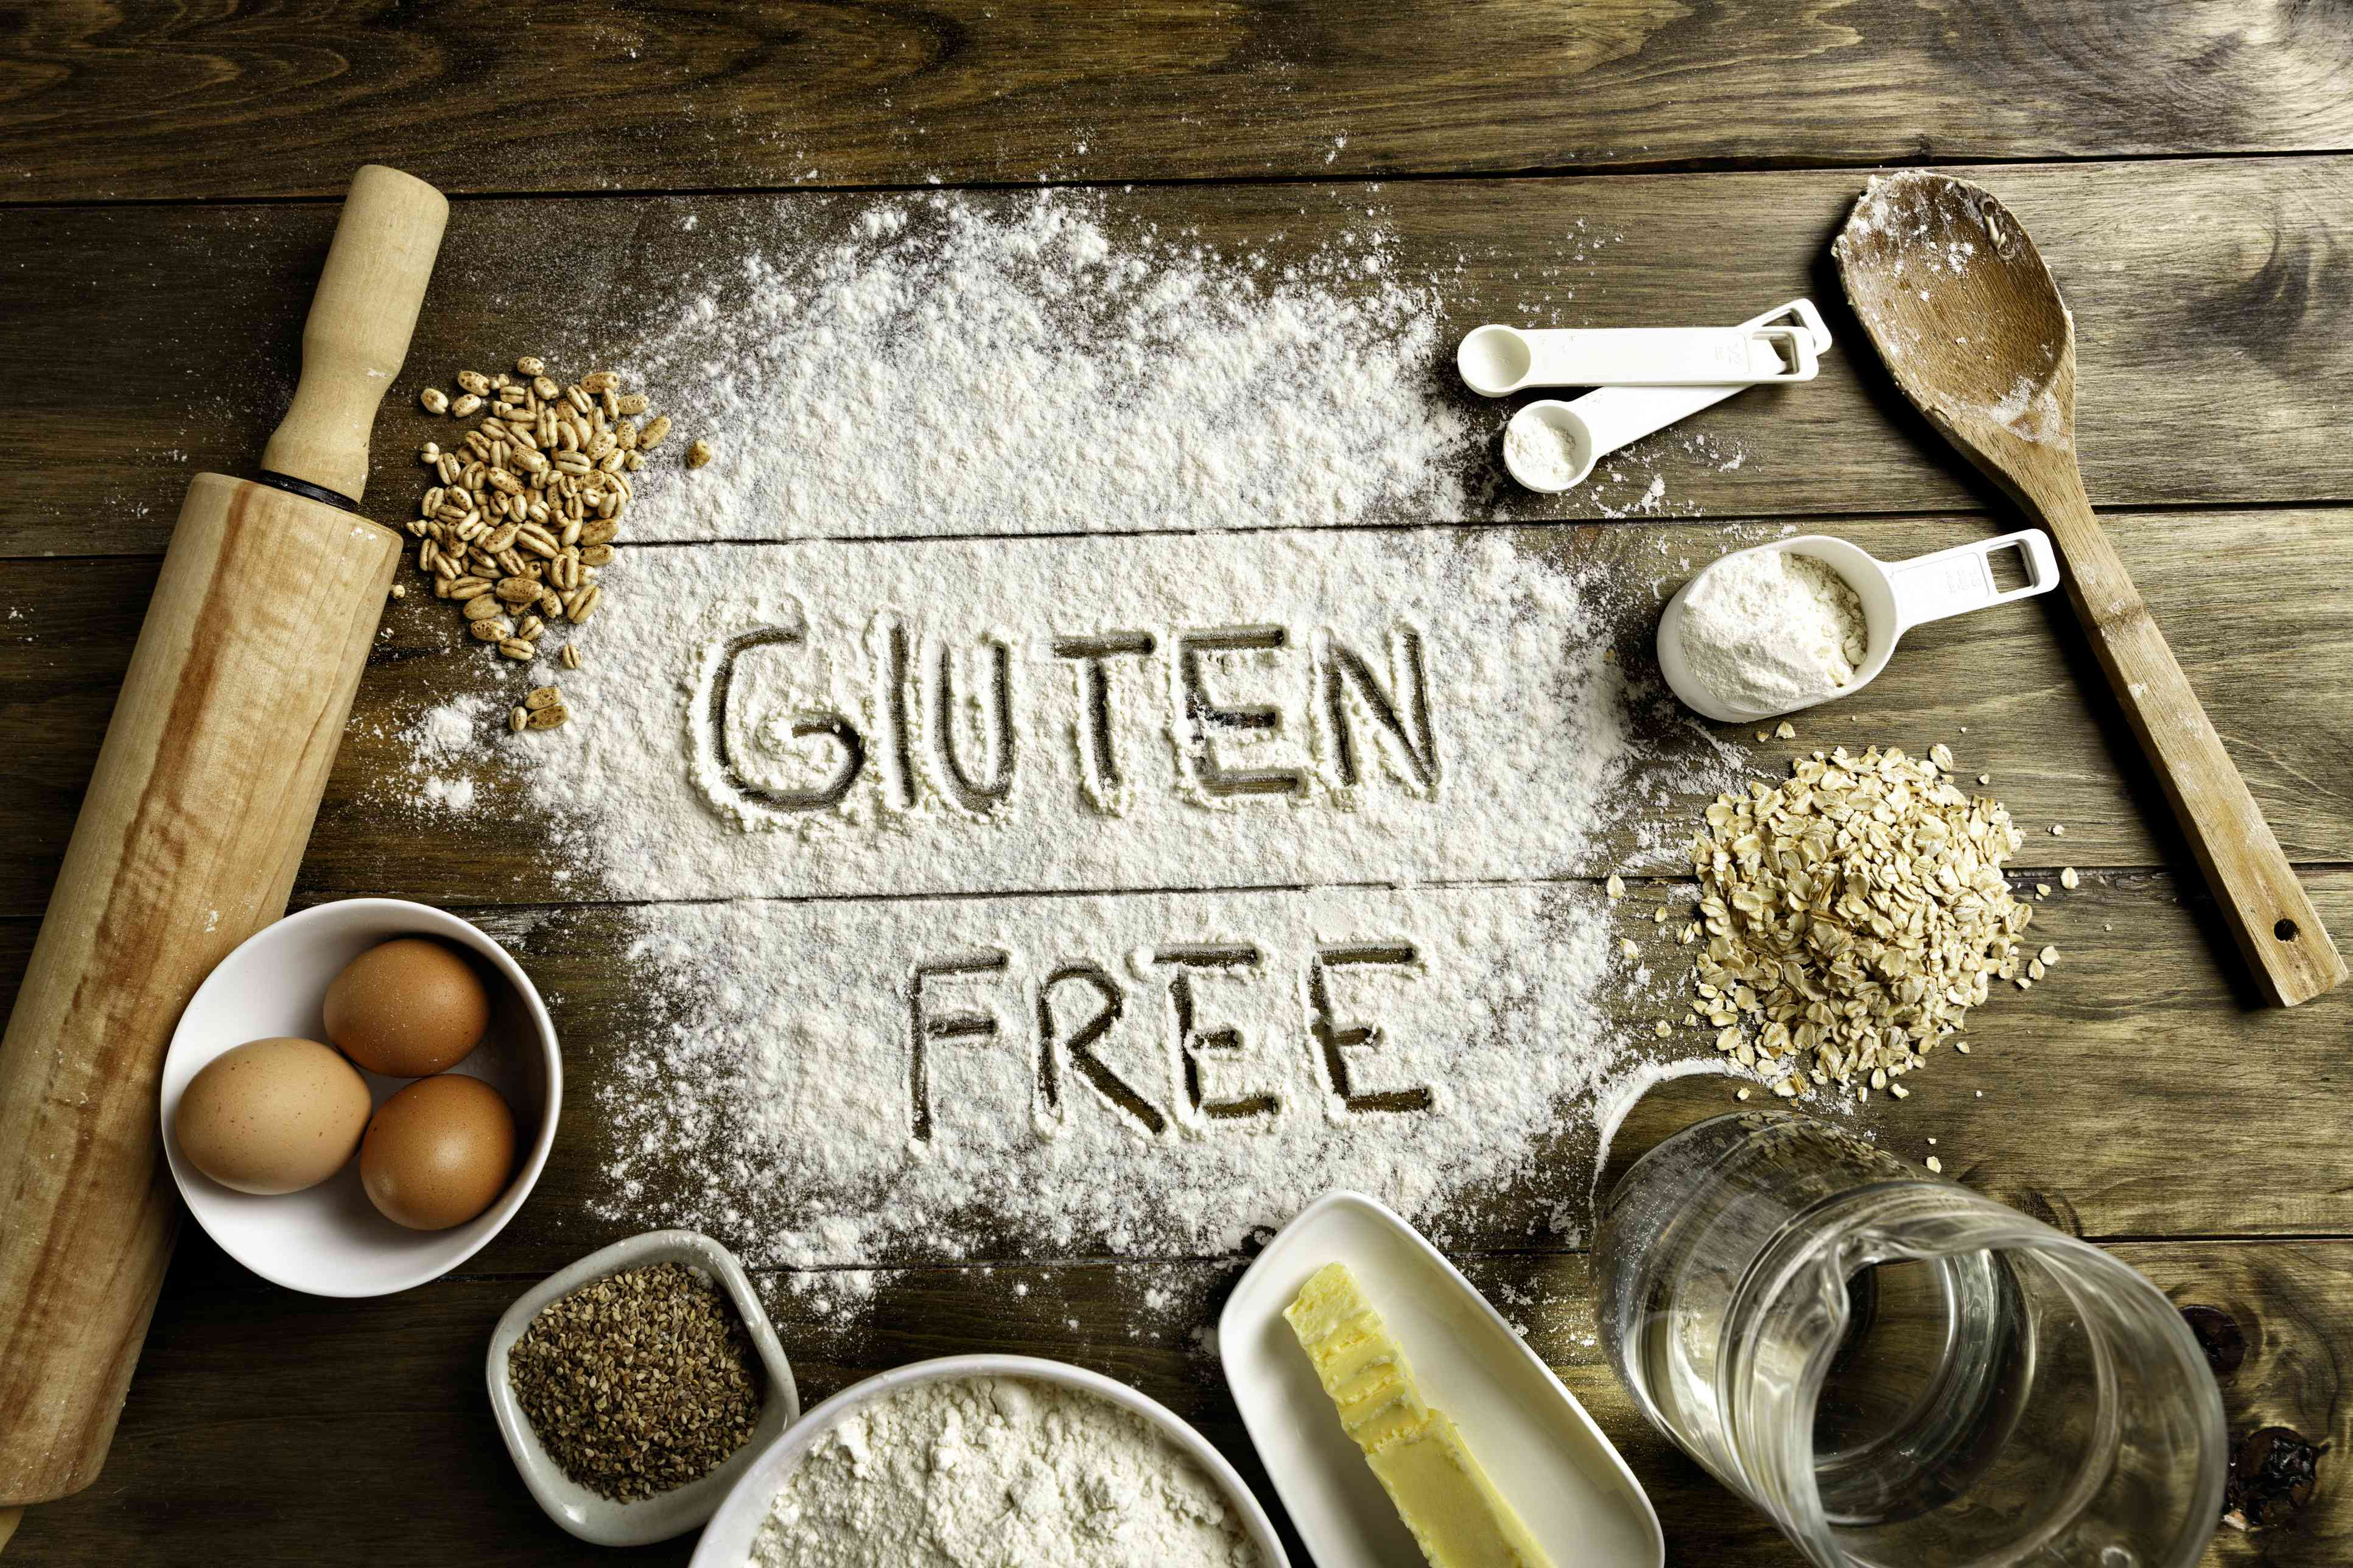 Gluten-free bread ingredients and utensils on wood frame background